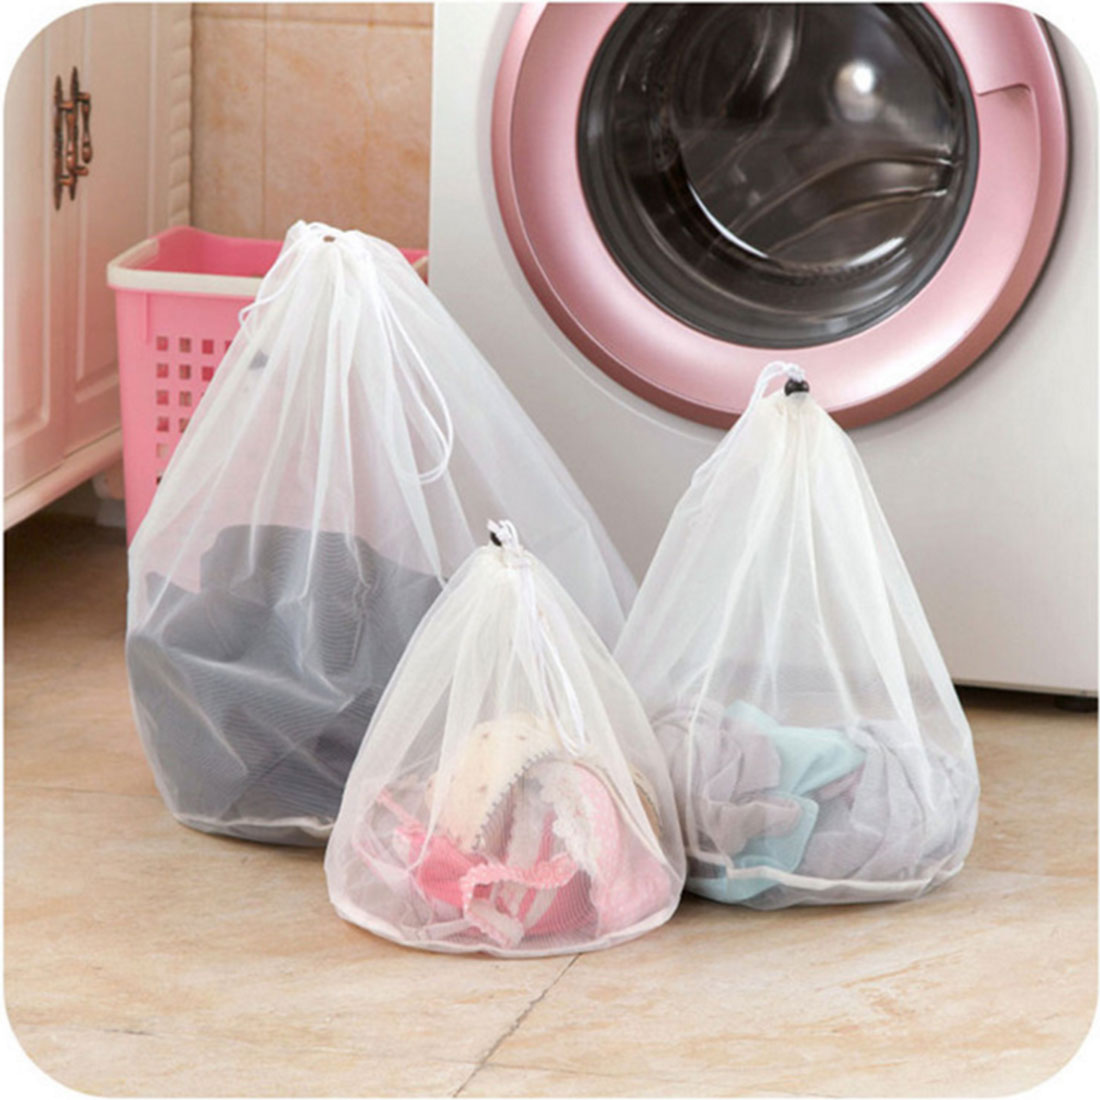 Hot Sale Practical Household Cleaning Tools Bra Underwear Products Laundry Bags Baskets Mesh Bag Accessories Laundry Wash Care